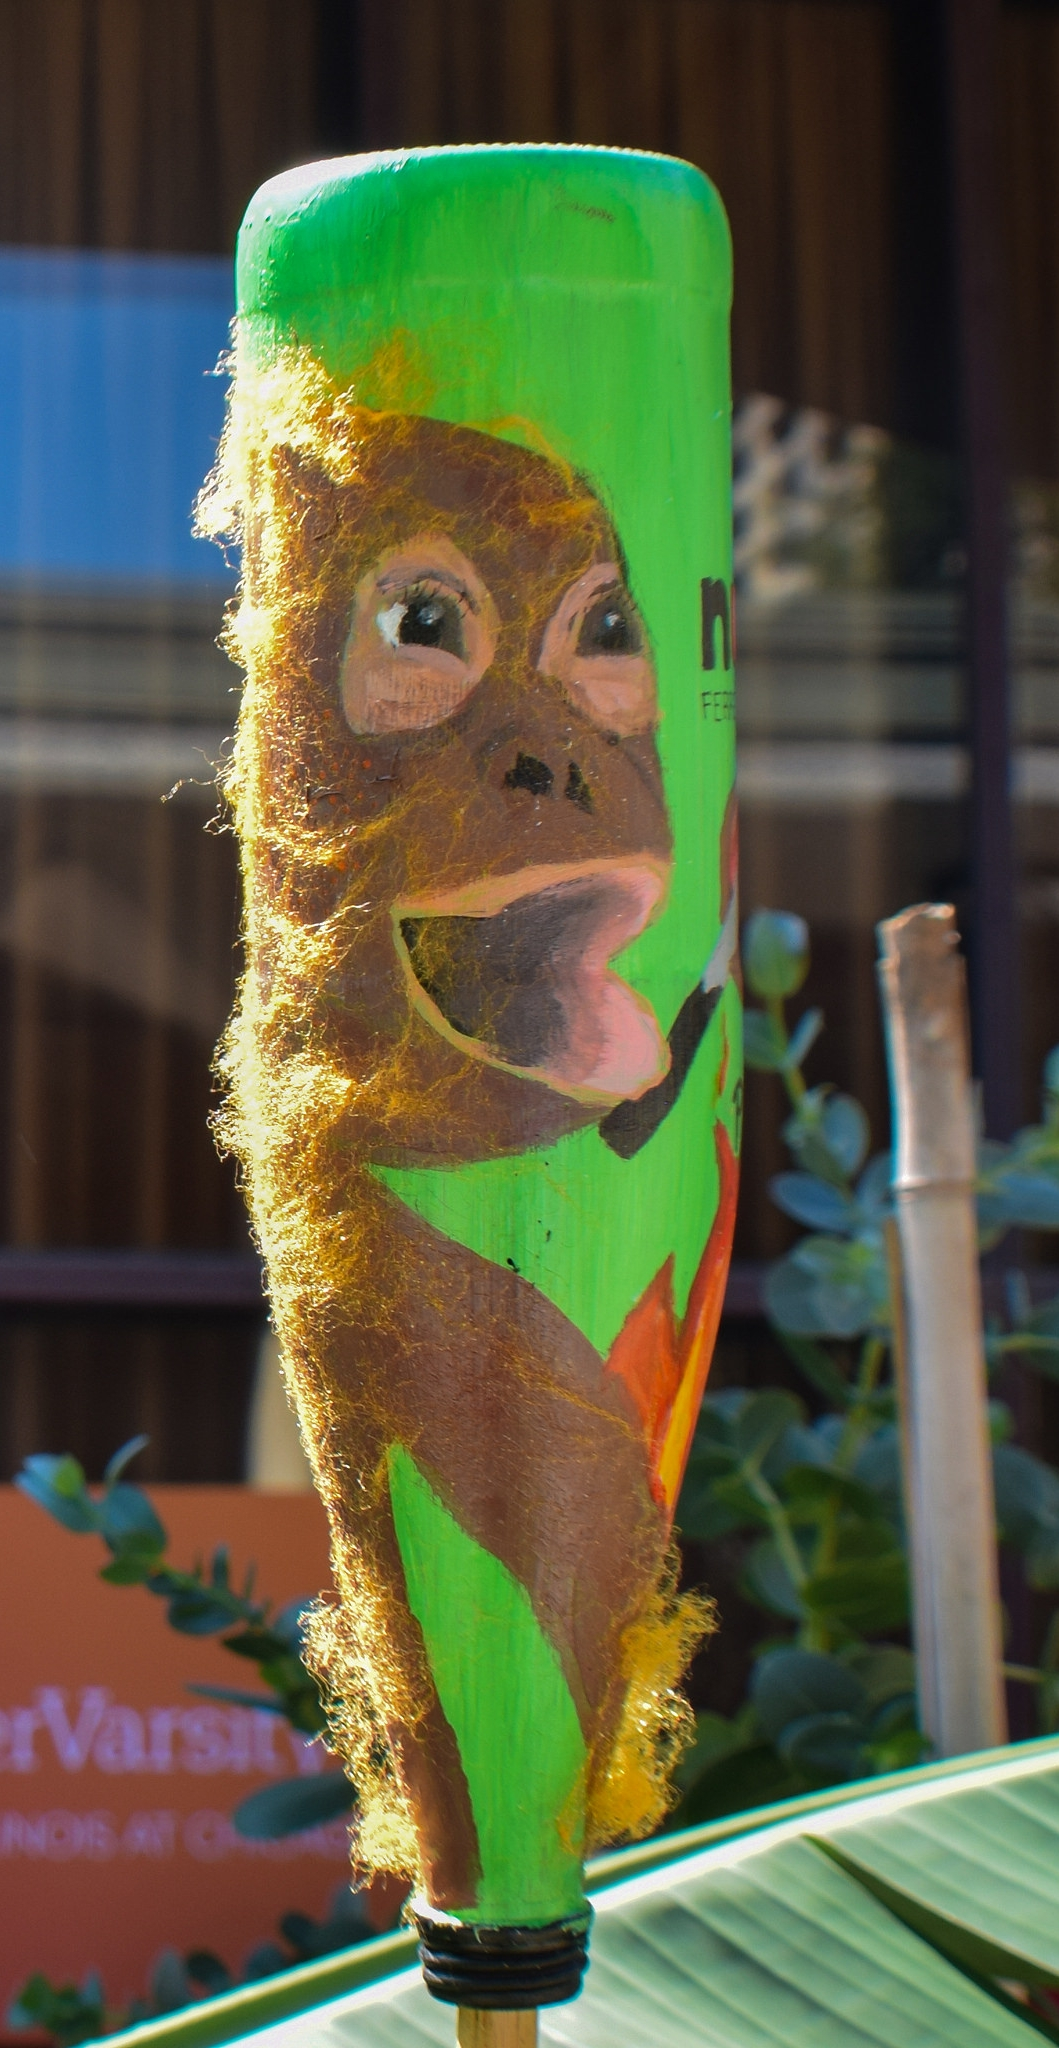 Jocelyn's screaming orangutan bottle due to destruction of its home for humans to get palm oil.